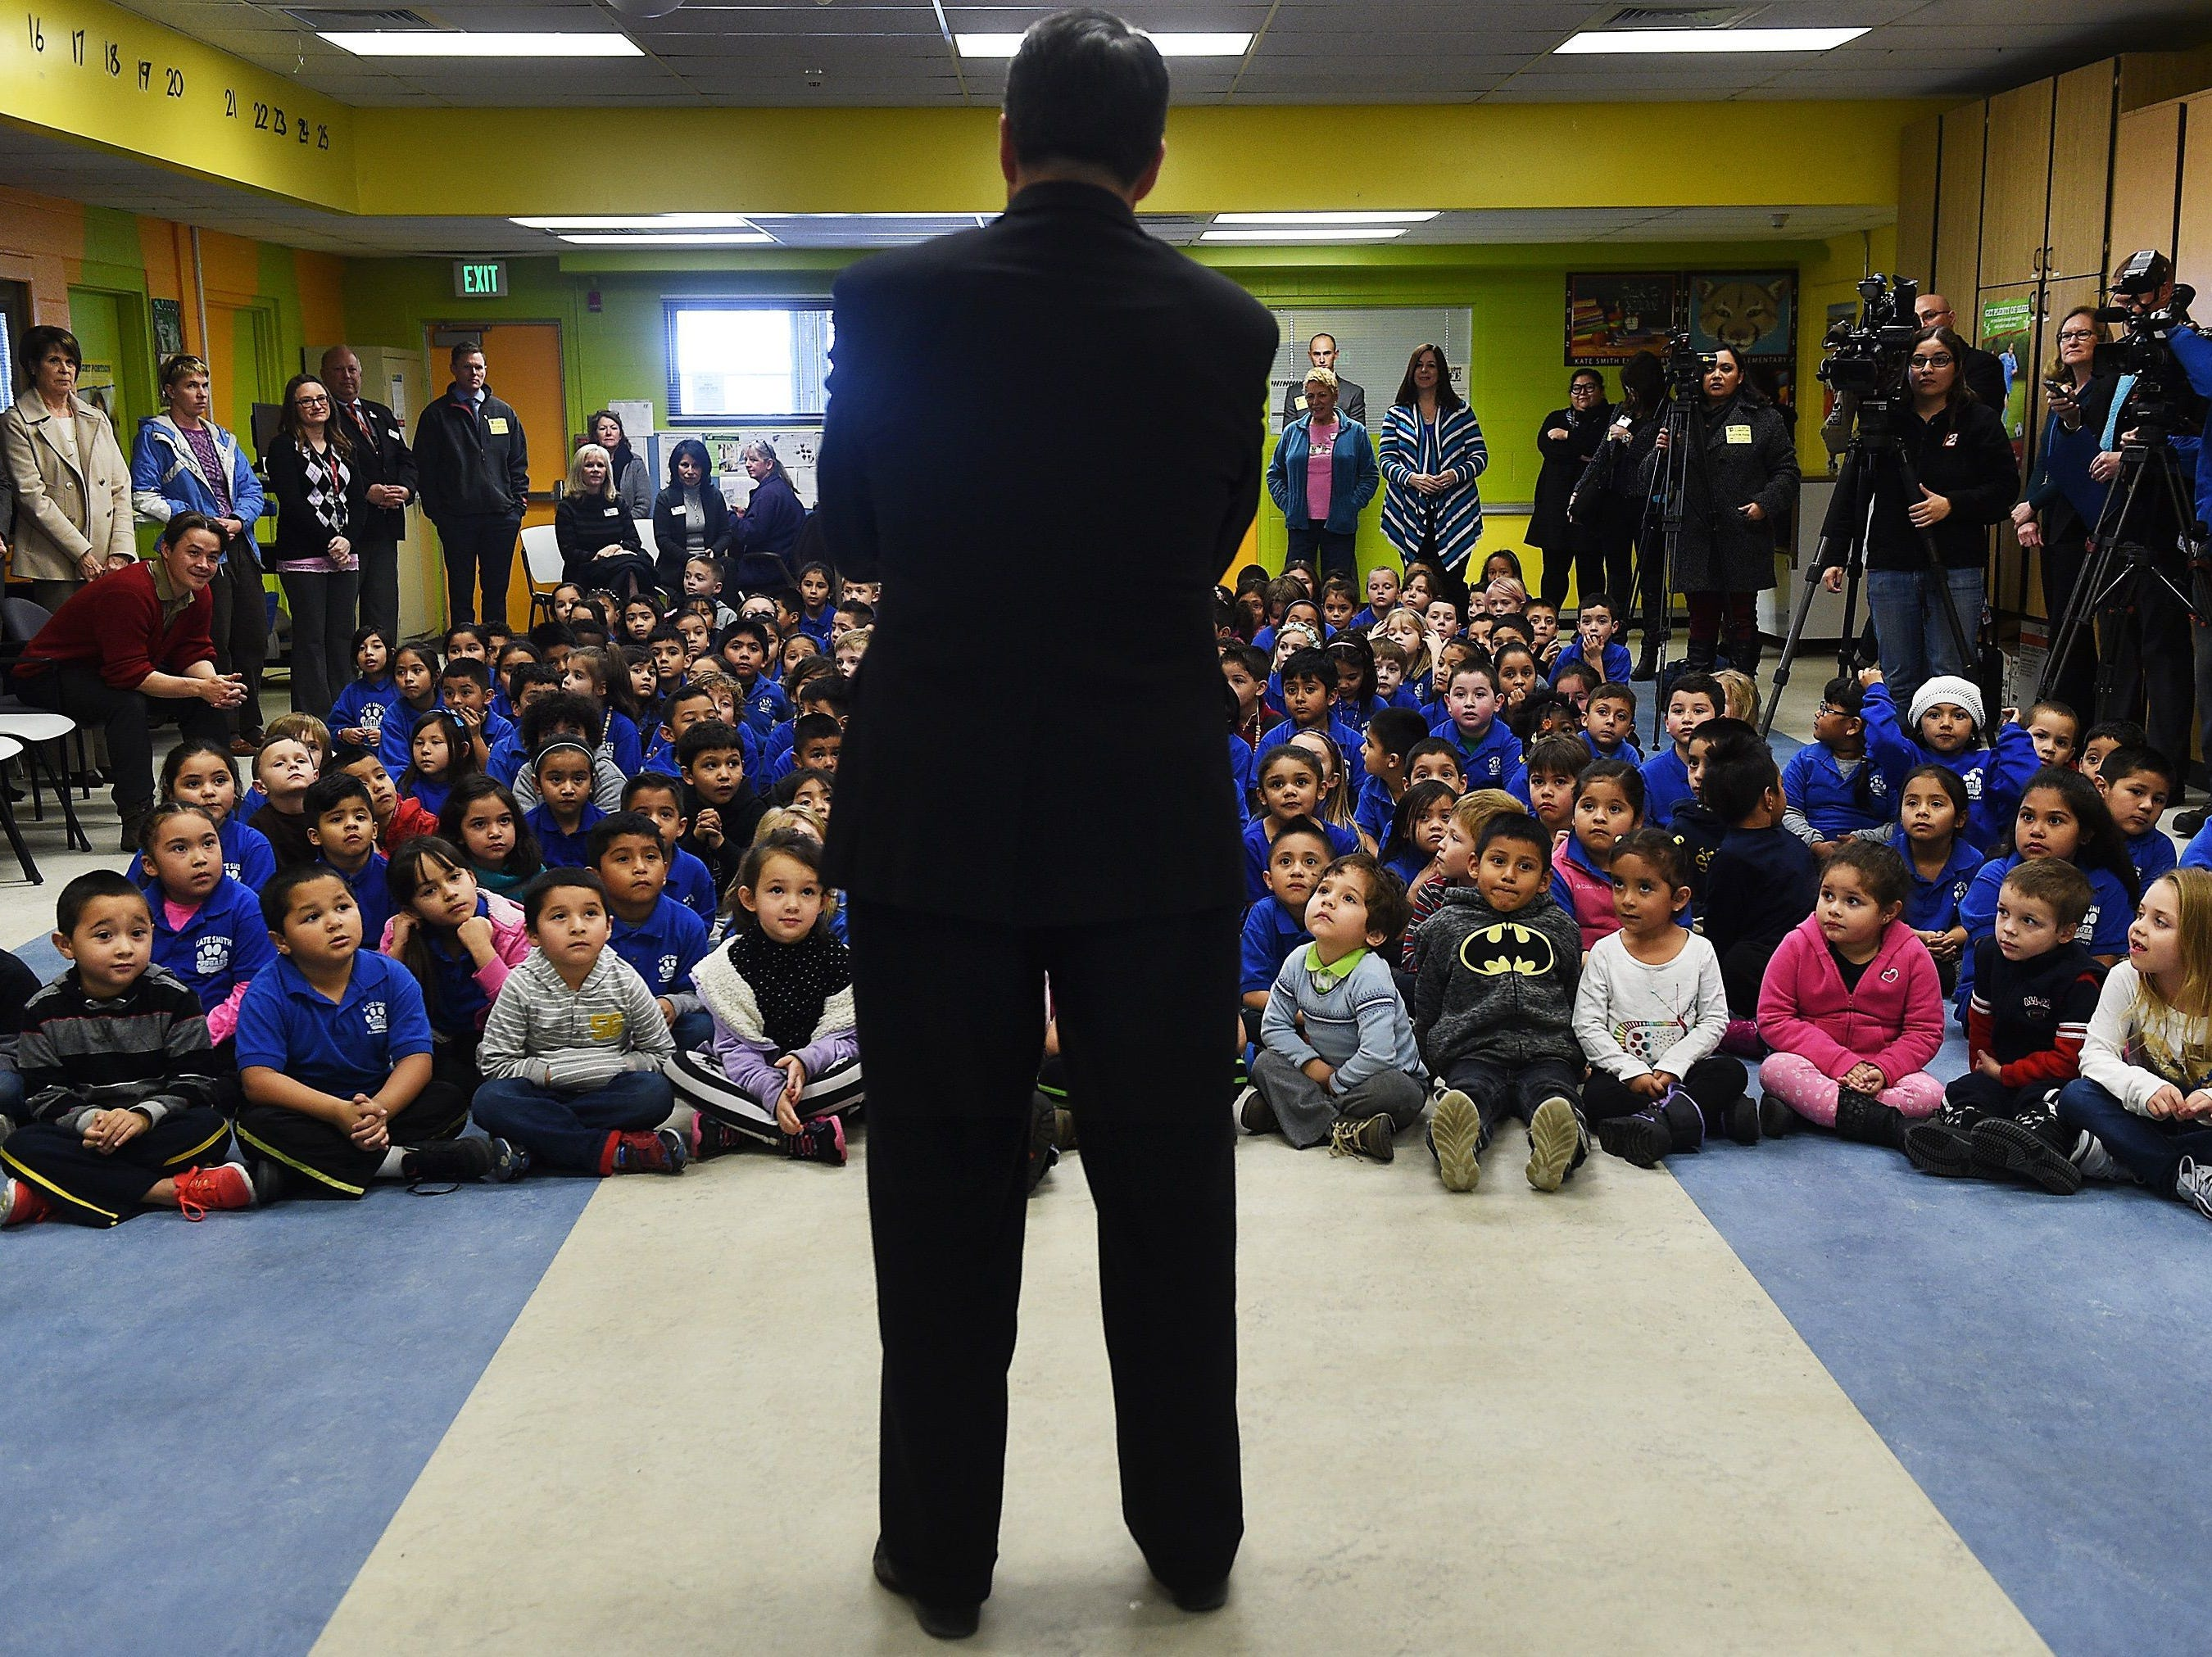 Governor Brian Sandoval speaks at Kate Smith Elementary School in Sparks on Feb. 2, 2016. Jason Bean/RGJ file